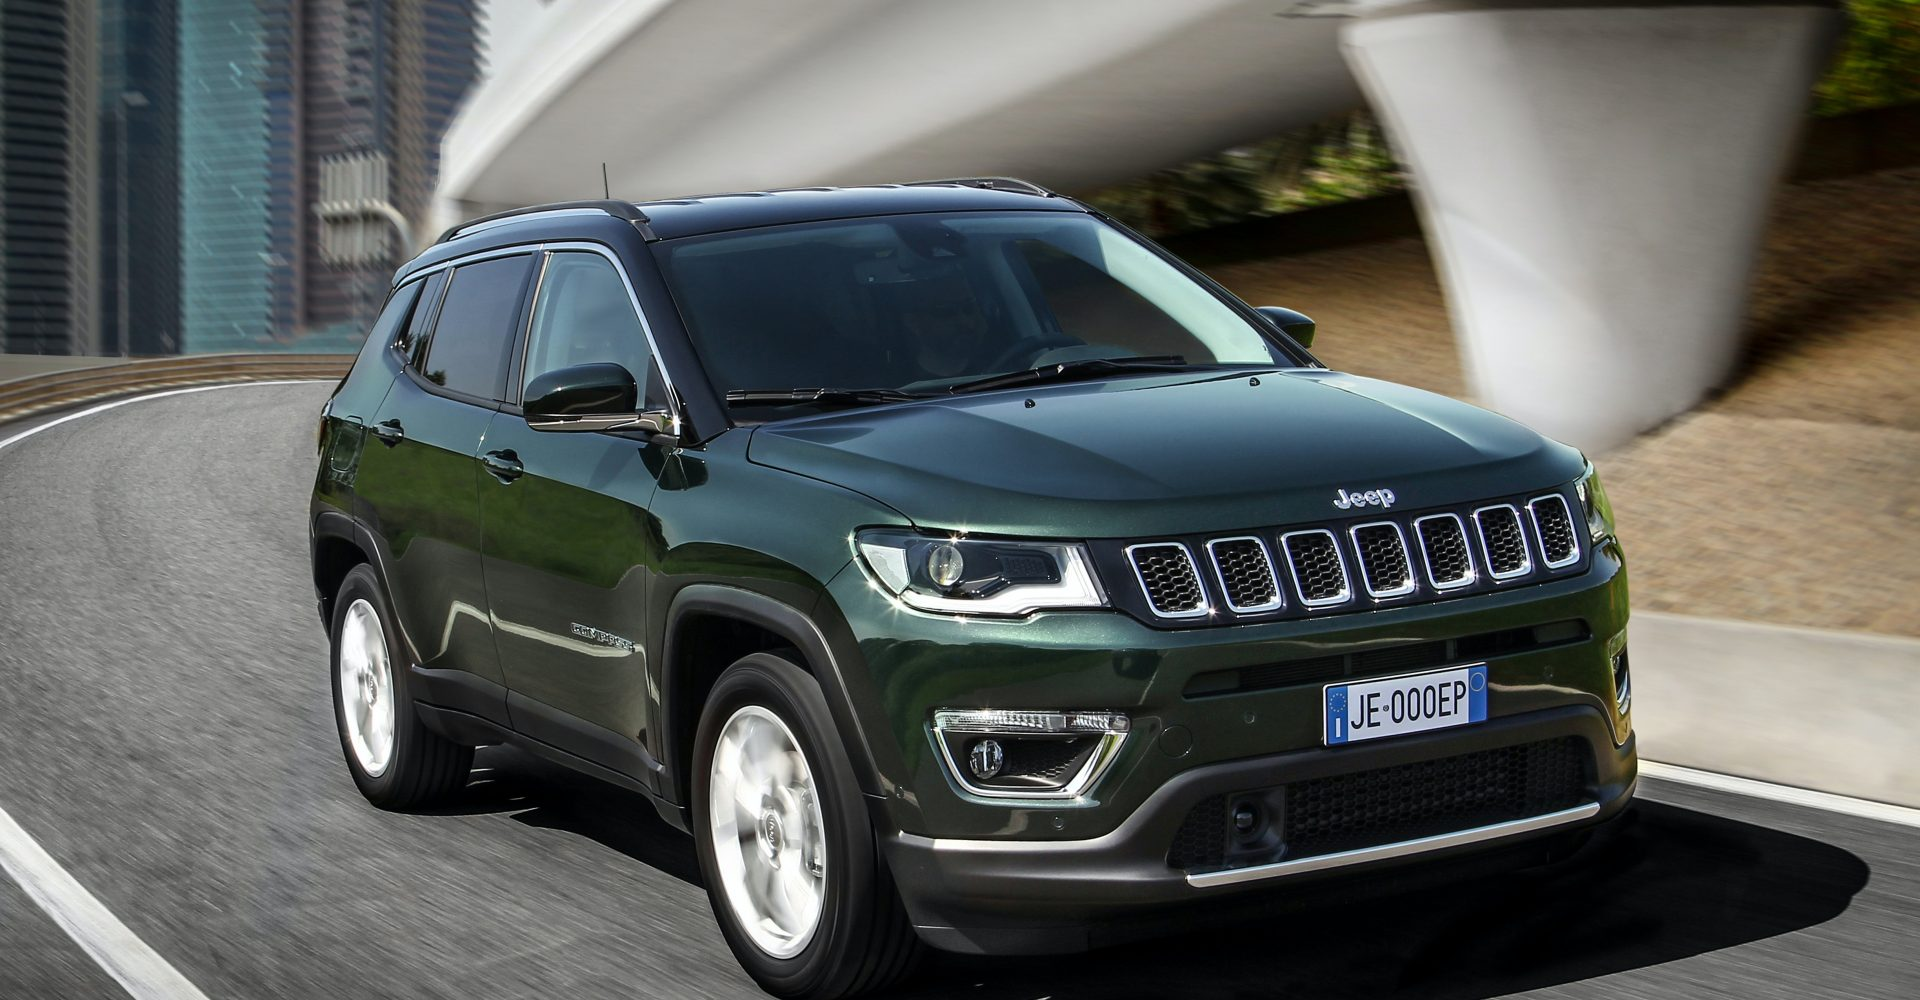 Jeep updates Compass with new efficient engine